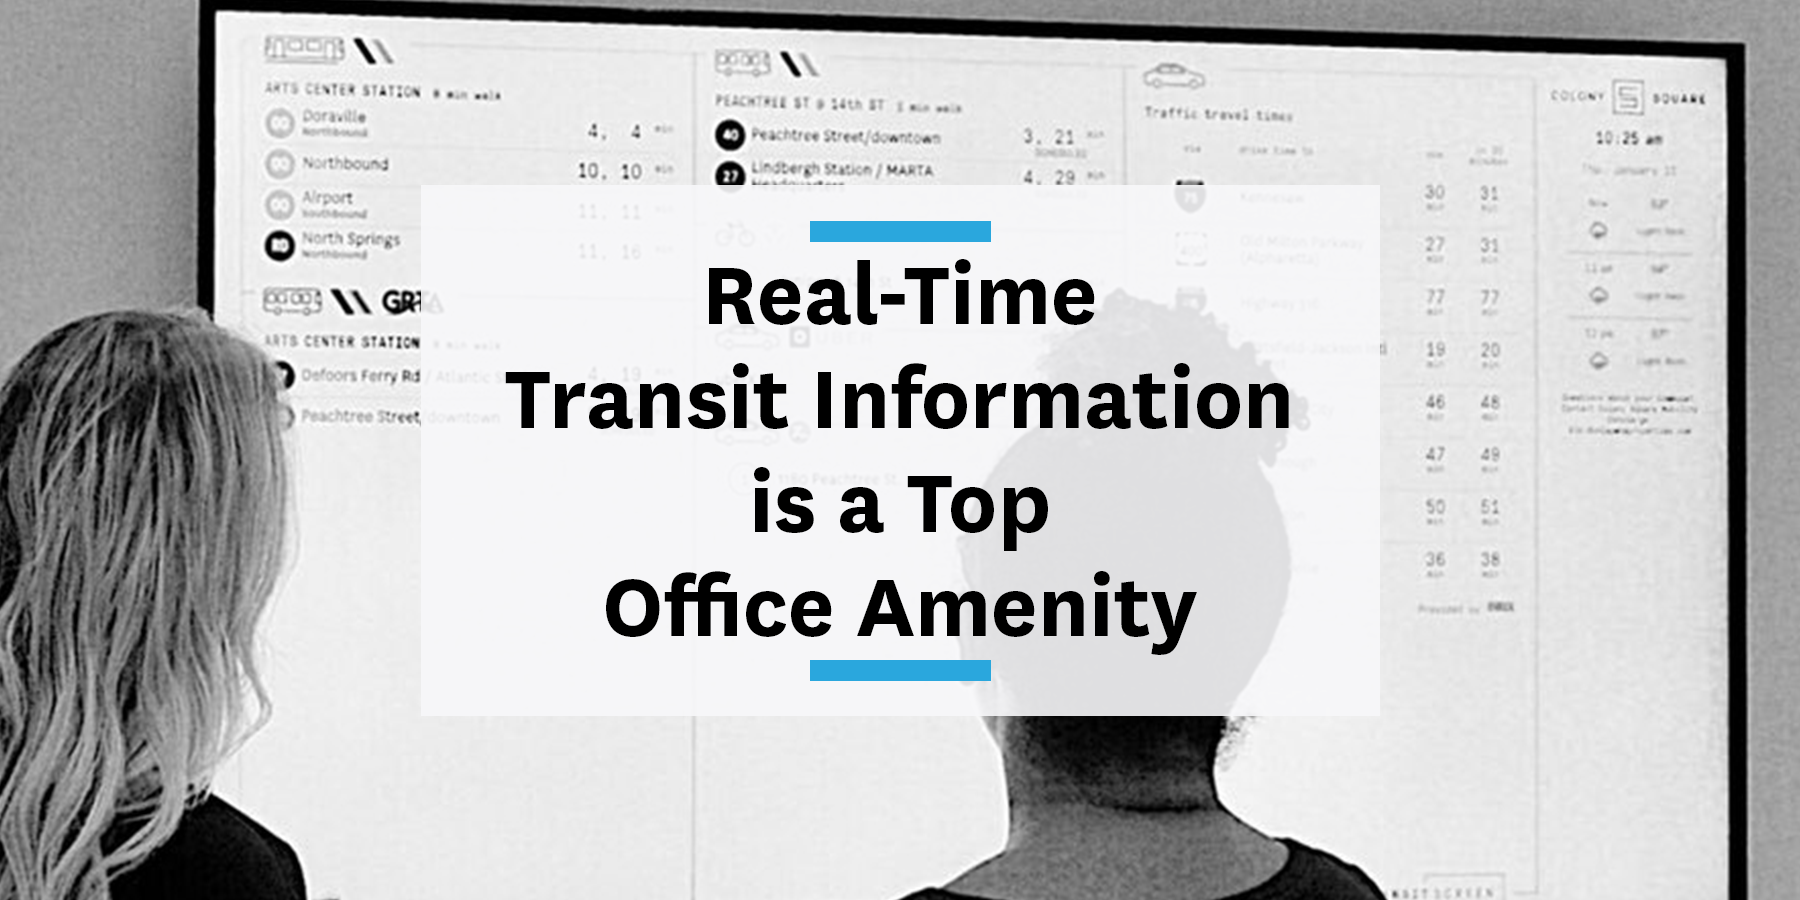 Feature image for real-time transit information being a top office amenity